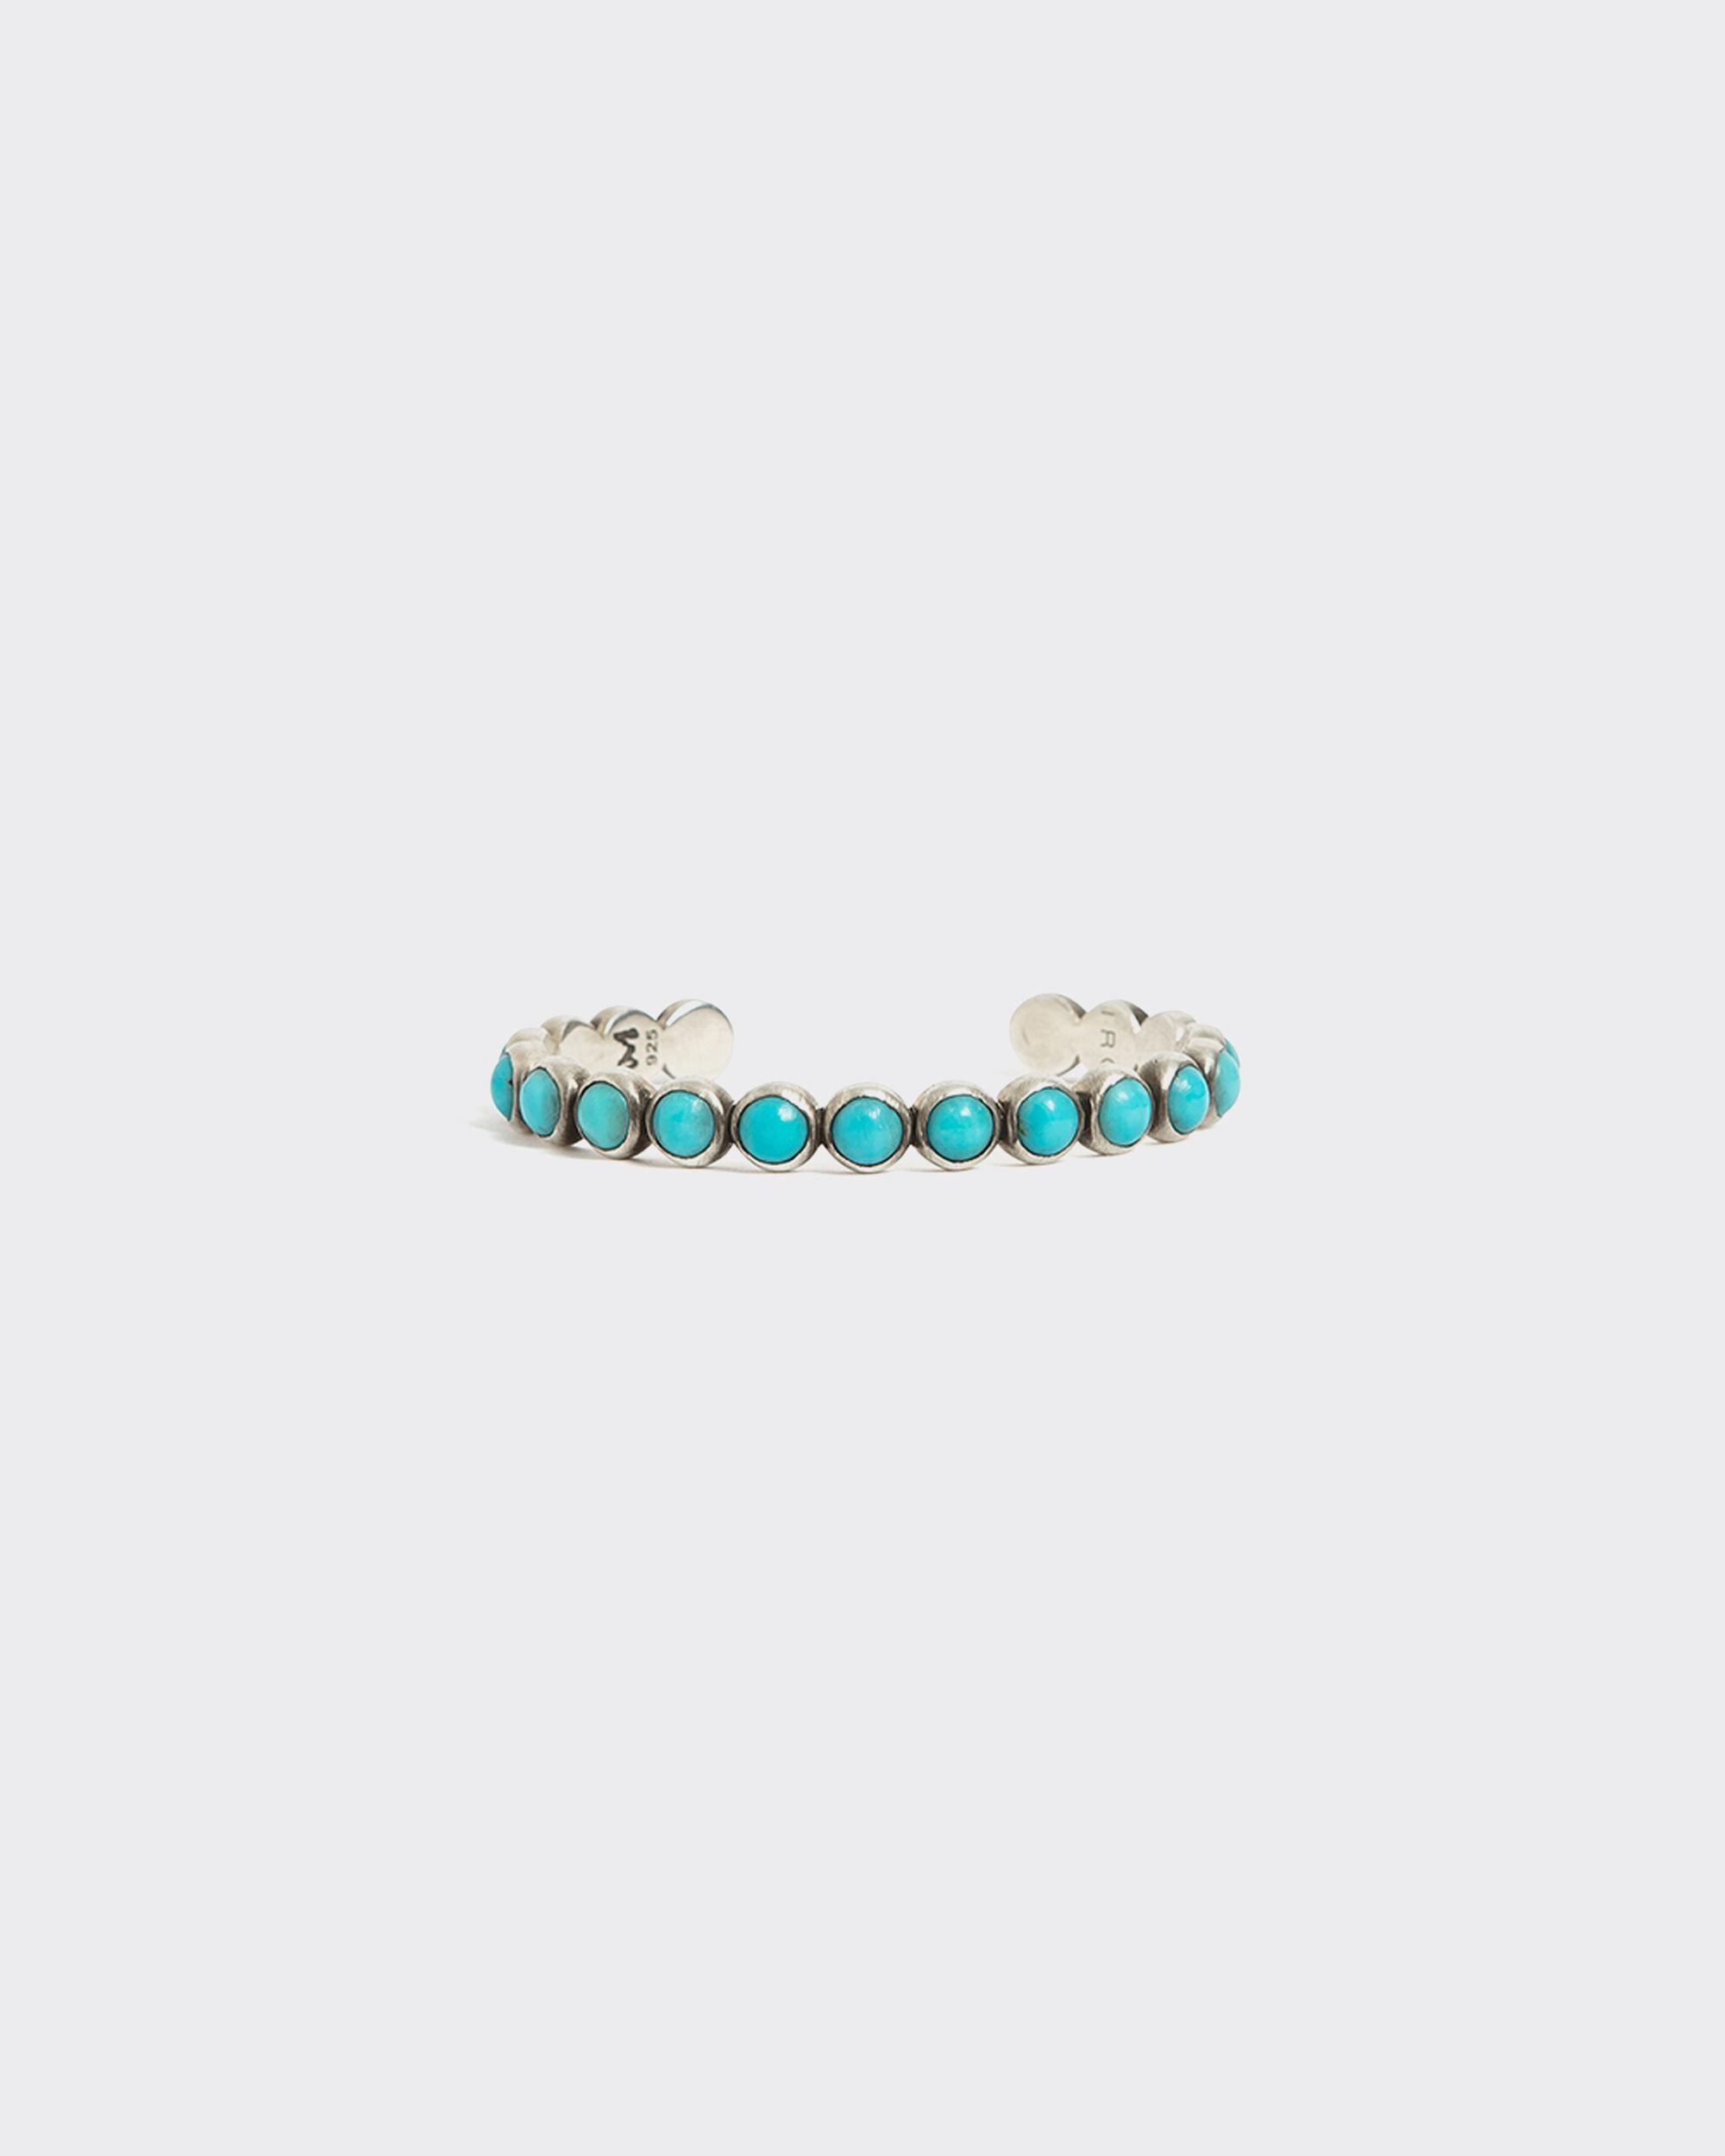 CUIVRE SILVER AND TURQUOISE BEAD BRACELET